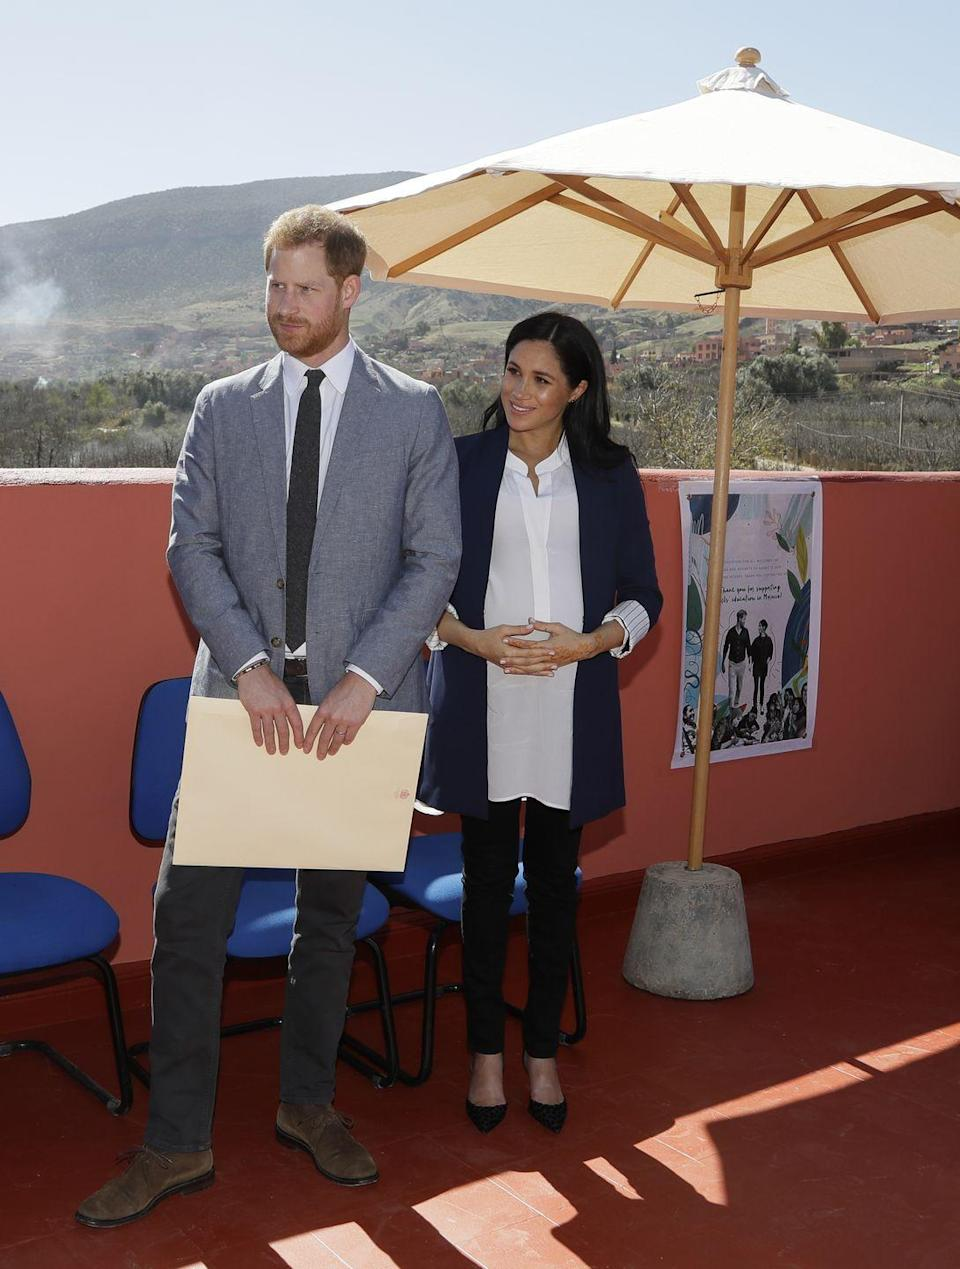 """<p>Later in the day the Duke and Duchess of Sussex attend an Investiture of the founder of Education for All. As it was a more formal occasion Meghan changed into Manolo Blahnik heels and a tailored white shirt. </p><p><a class=""""link rapid-noclick-resp"""" href=""""https://go.redirectingat.com?id=74968X1596630&url=https%3A%2F%2Fshop.nordstrom.com%2Fs%2Fmanolo-blahnik-bb-pump-women%2F3434469&sref=https%3A%2F%2Fwww.townandcountrymag.com%2Fstyle%2Ffashion-trends%2Fg3272%2Fmeghan-markle-preppy-style%2F"""" rel=""""nofollow noopener"""" target=""""_blank"""" data-ylk=""""slk:Shop Similar"""">Shop Similar</a> <em>BB Pump, Manolo Blahnik, $625 </em> </p>"""